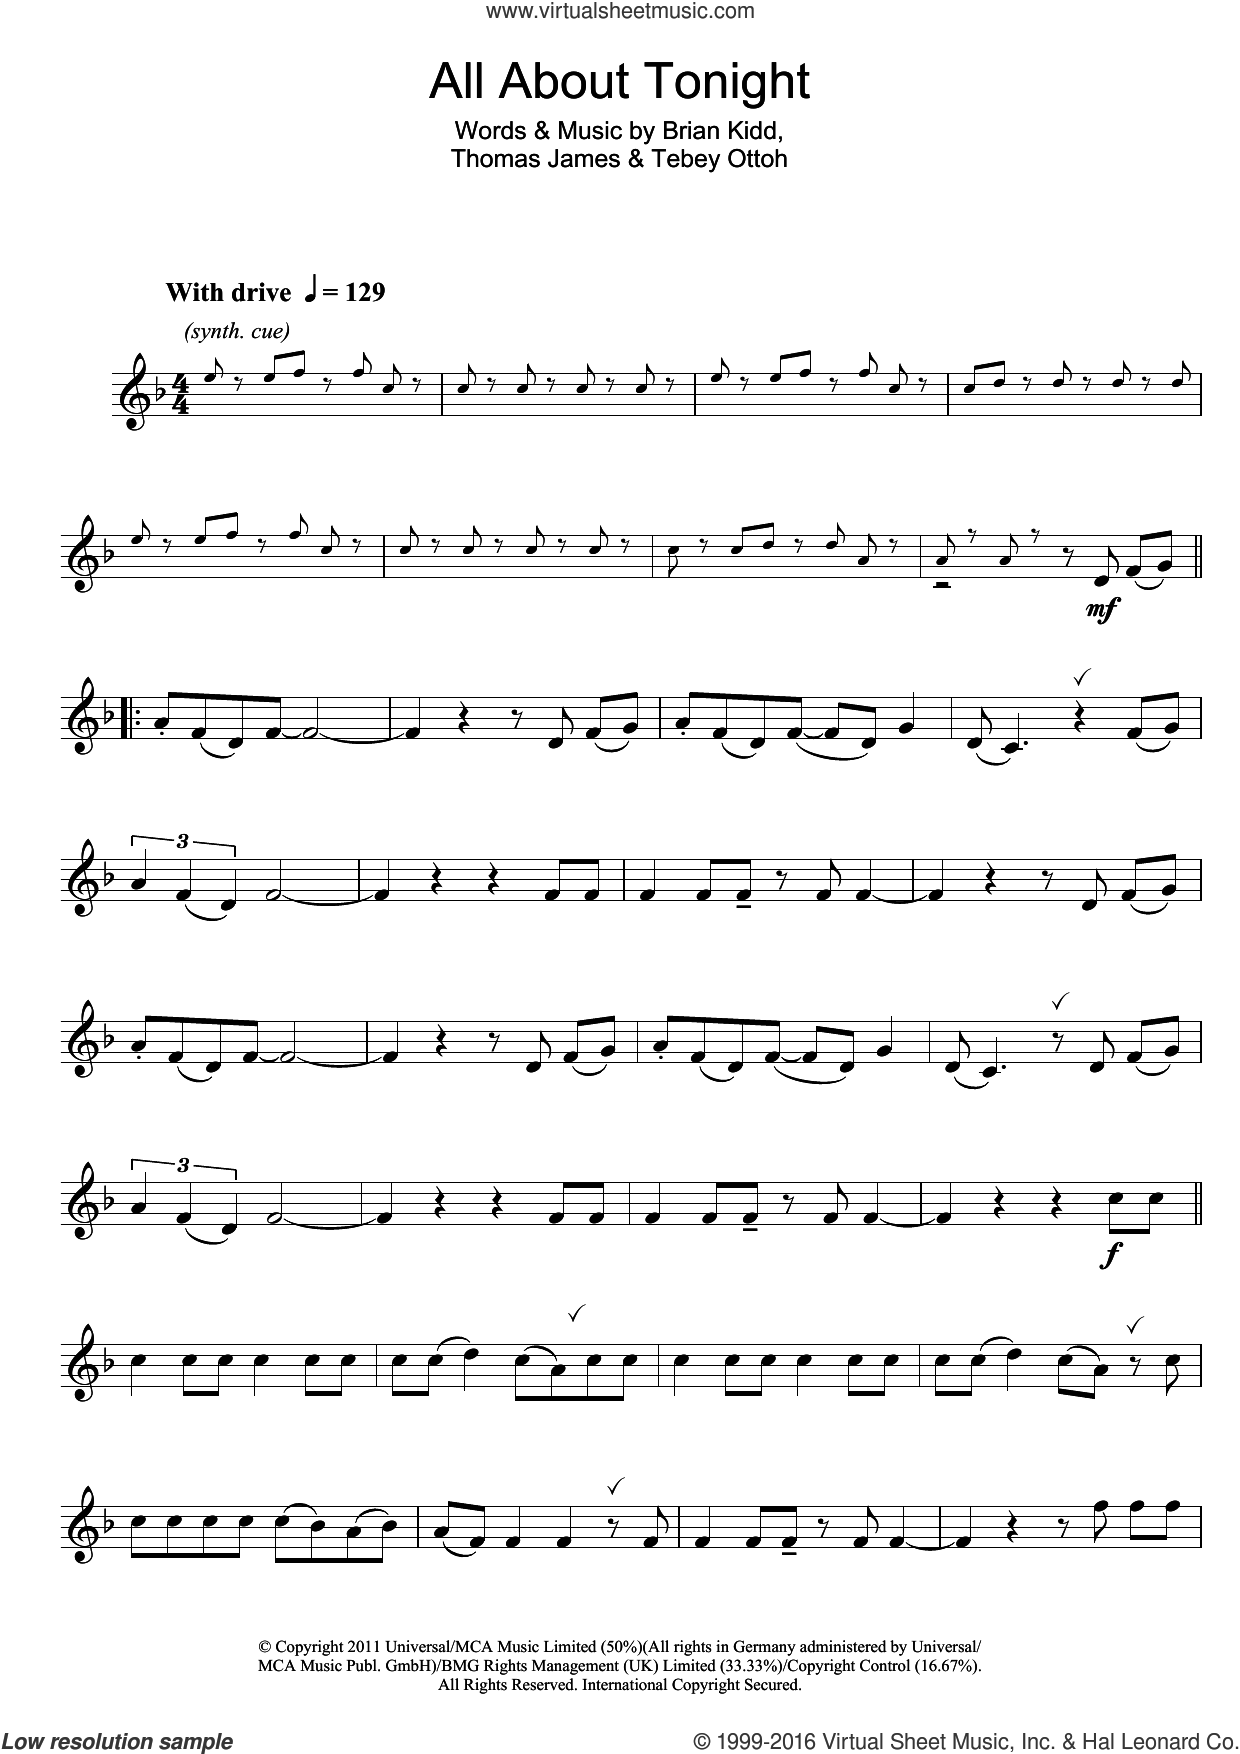 All About Tonight sheet music for clarinet solo by Pixie Lott, Brian Kidd, Tebey Ottoh and Thomas James, intermediate skill level